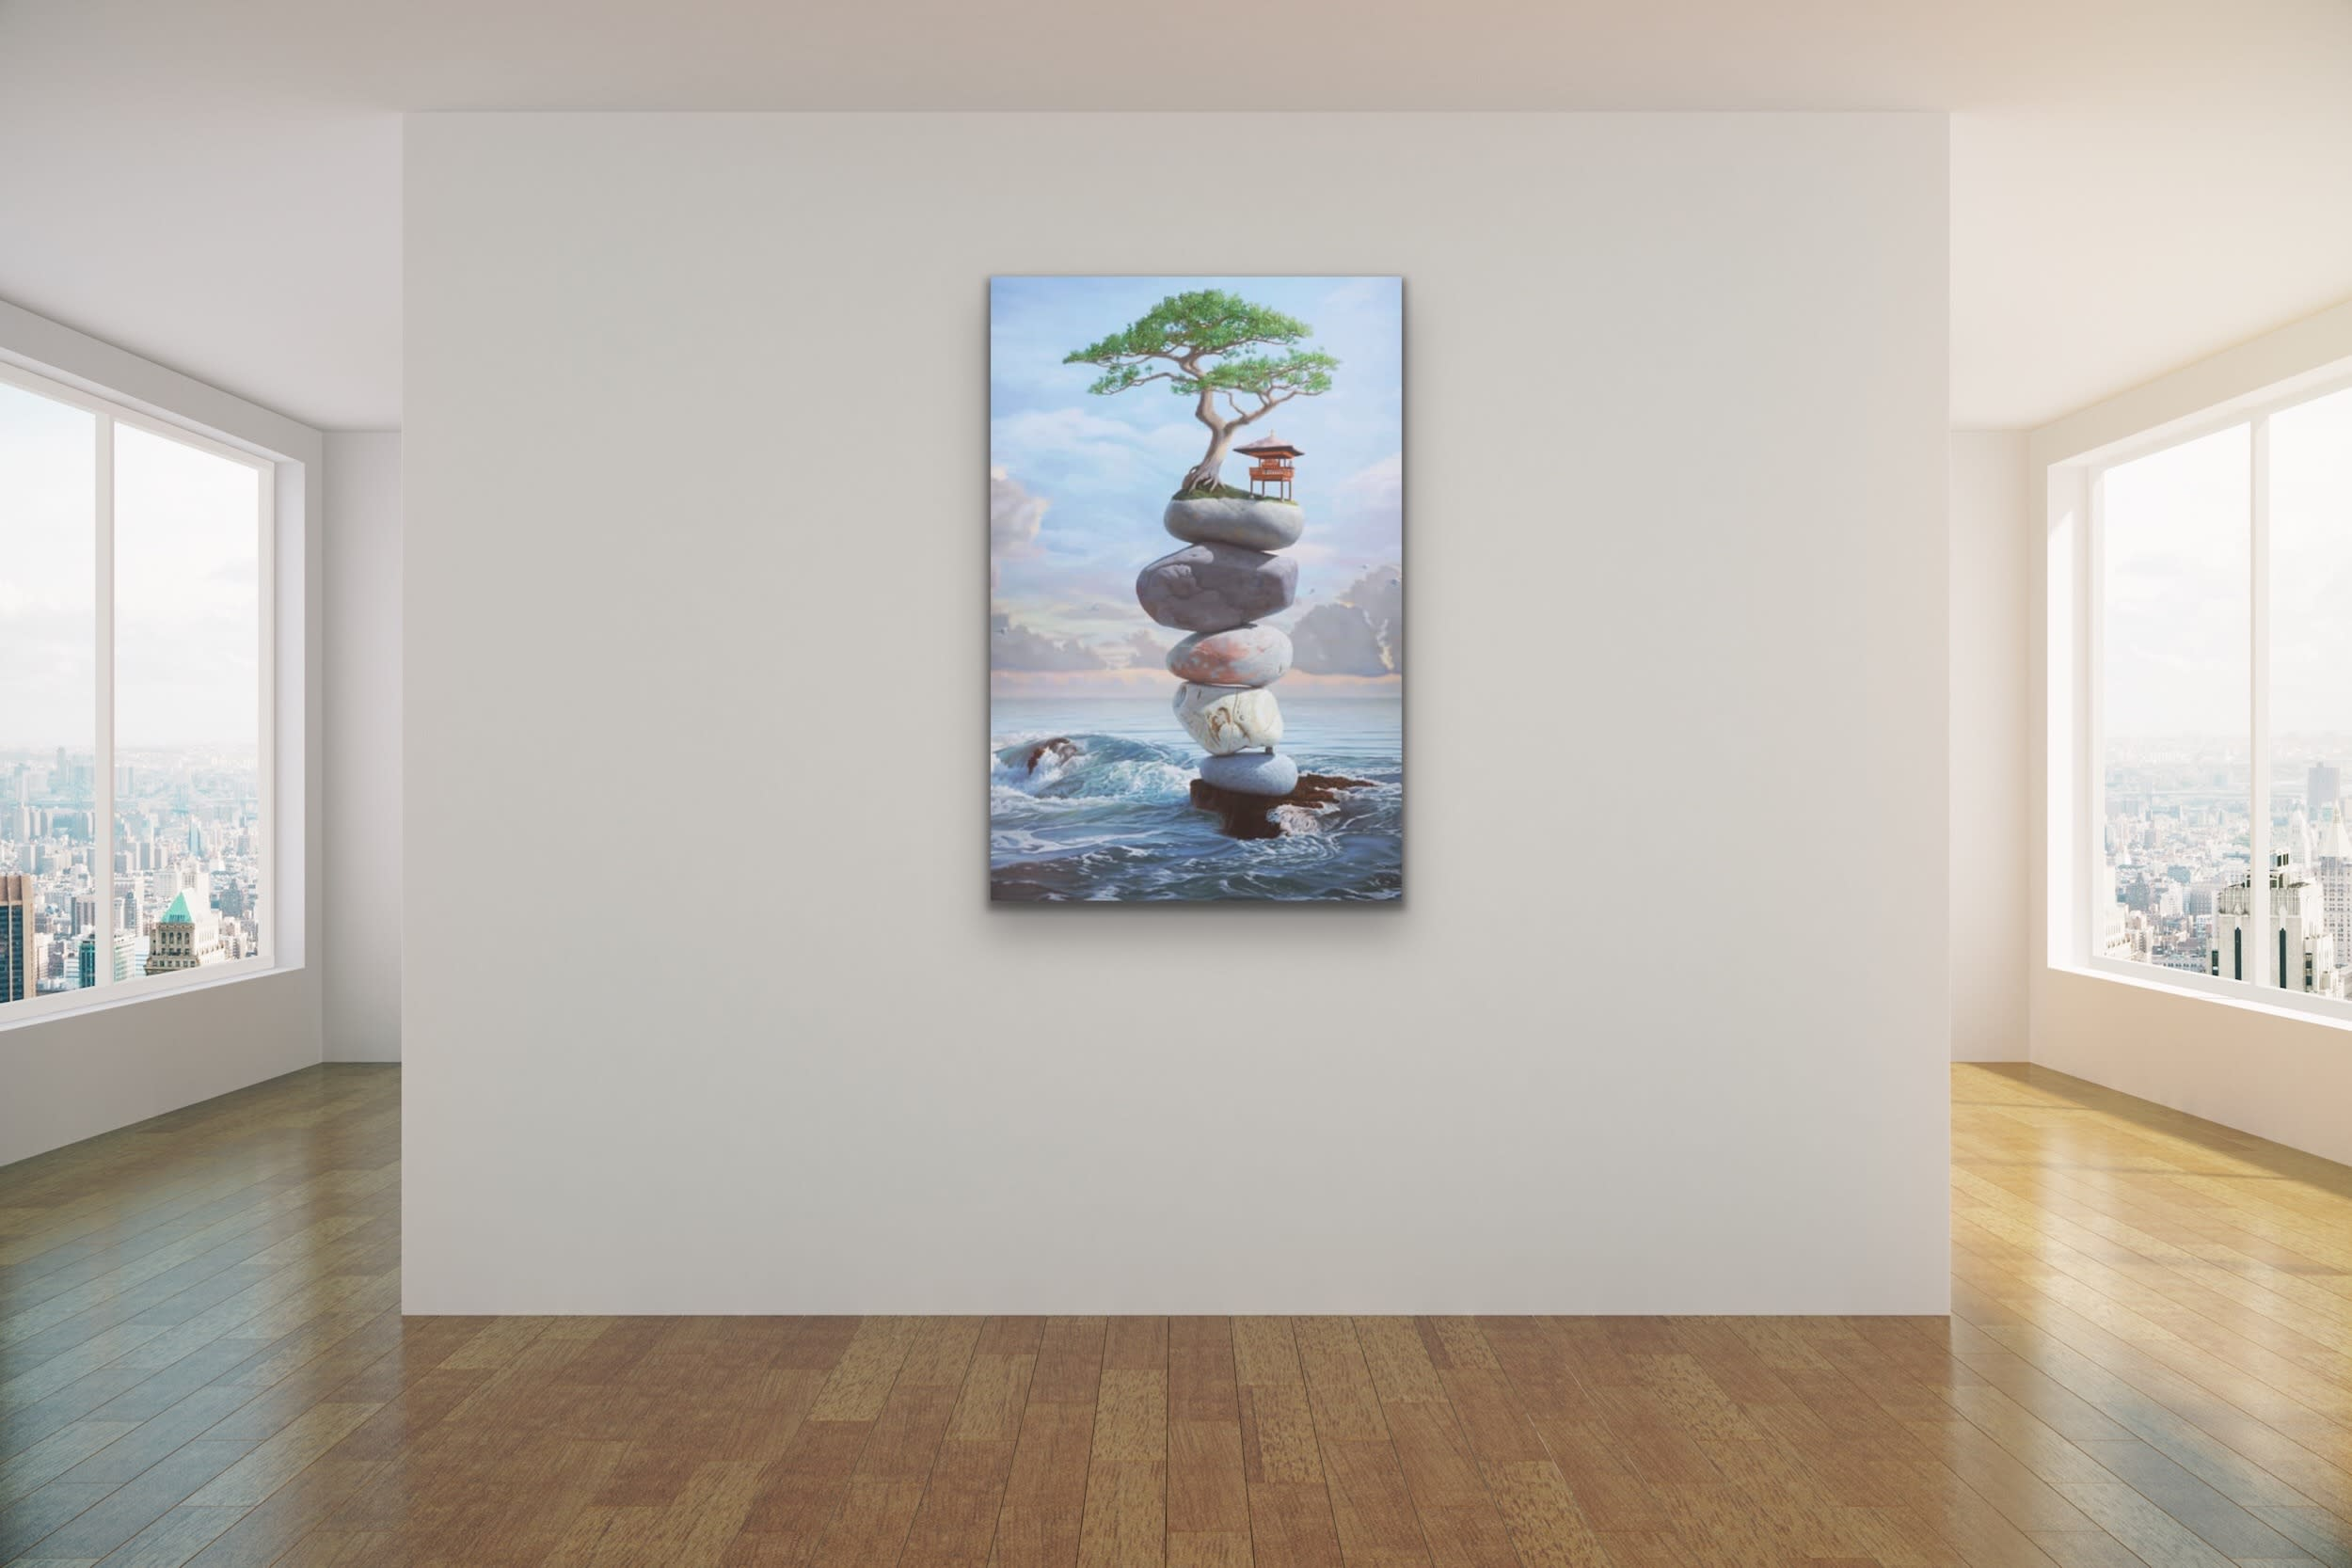 <div class='title'>           Paul Bond Magical Realism Poetry Serene Landscape Animals Nature Surreal Metaphorical Whimsical Fantasy Evo Art Maui Lahaina Front Street Art Gallery 1         </div>